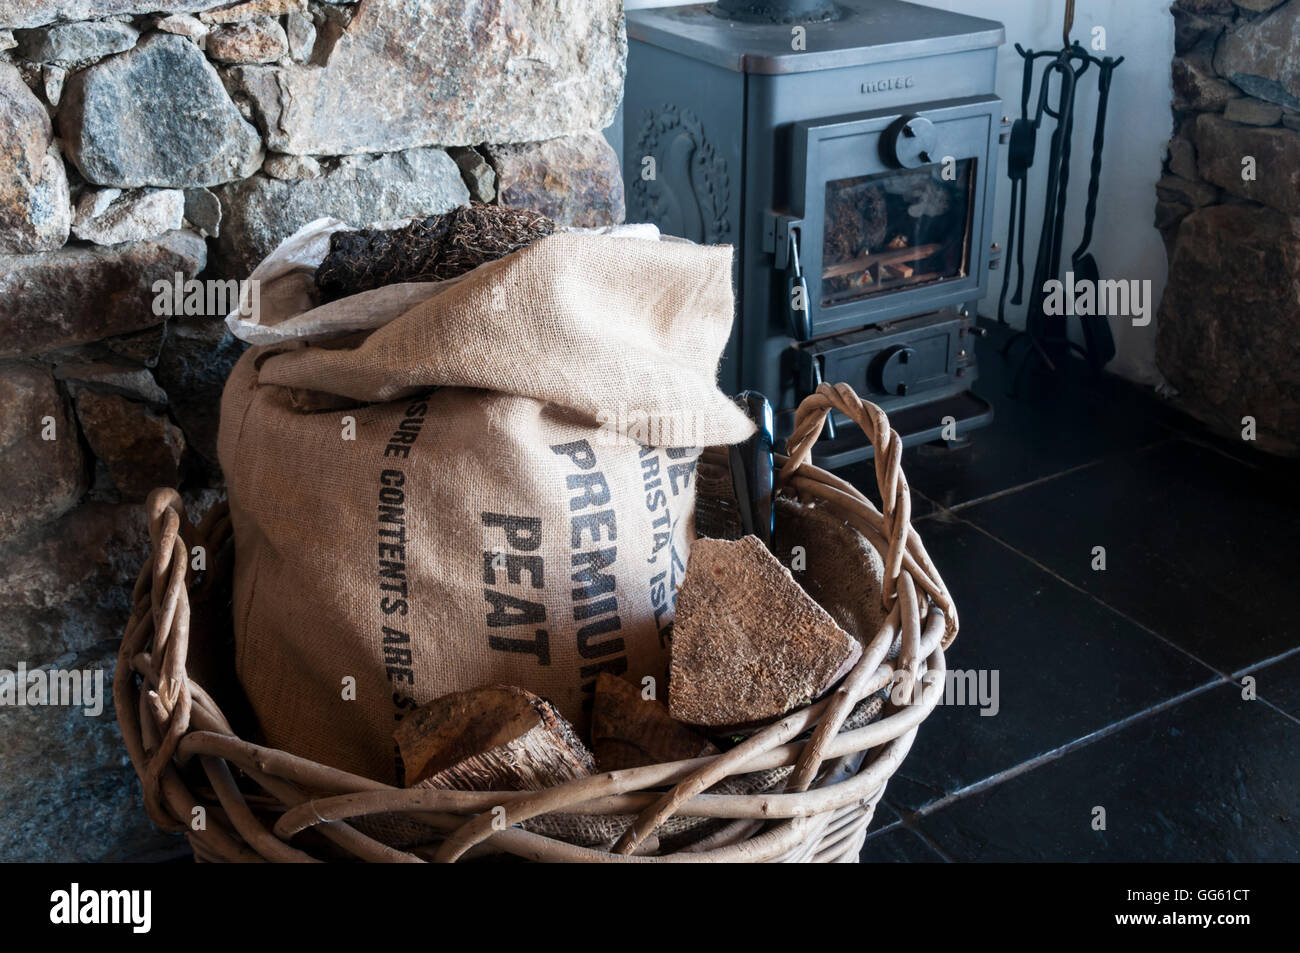 Sack of peat in a house in Outer Hebrides for use as fuel in Morsø wood-burning stove in background. - Stock Image